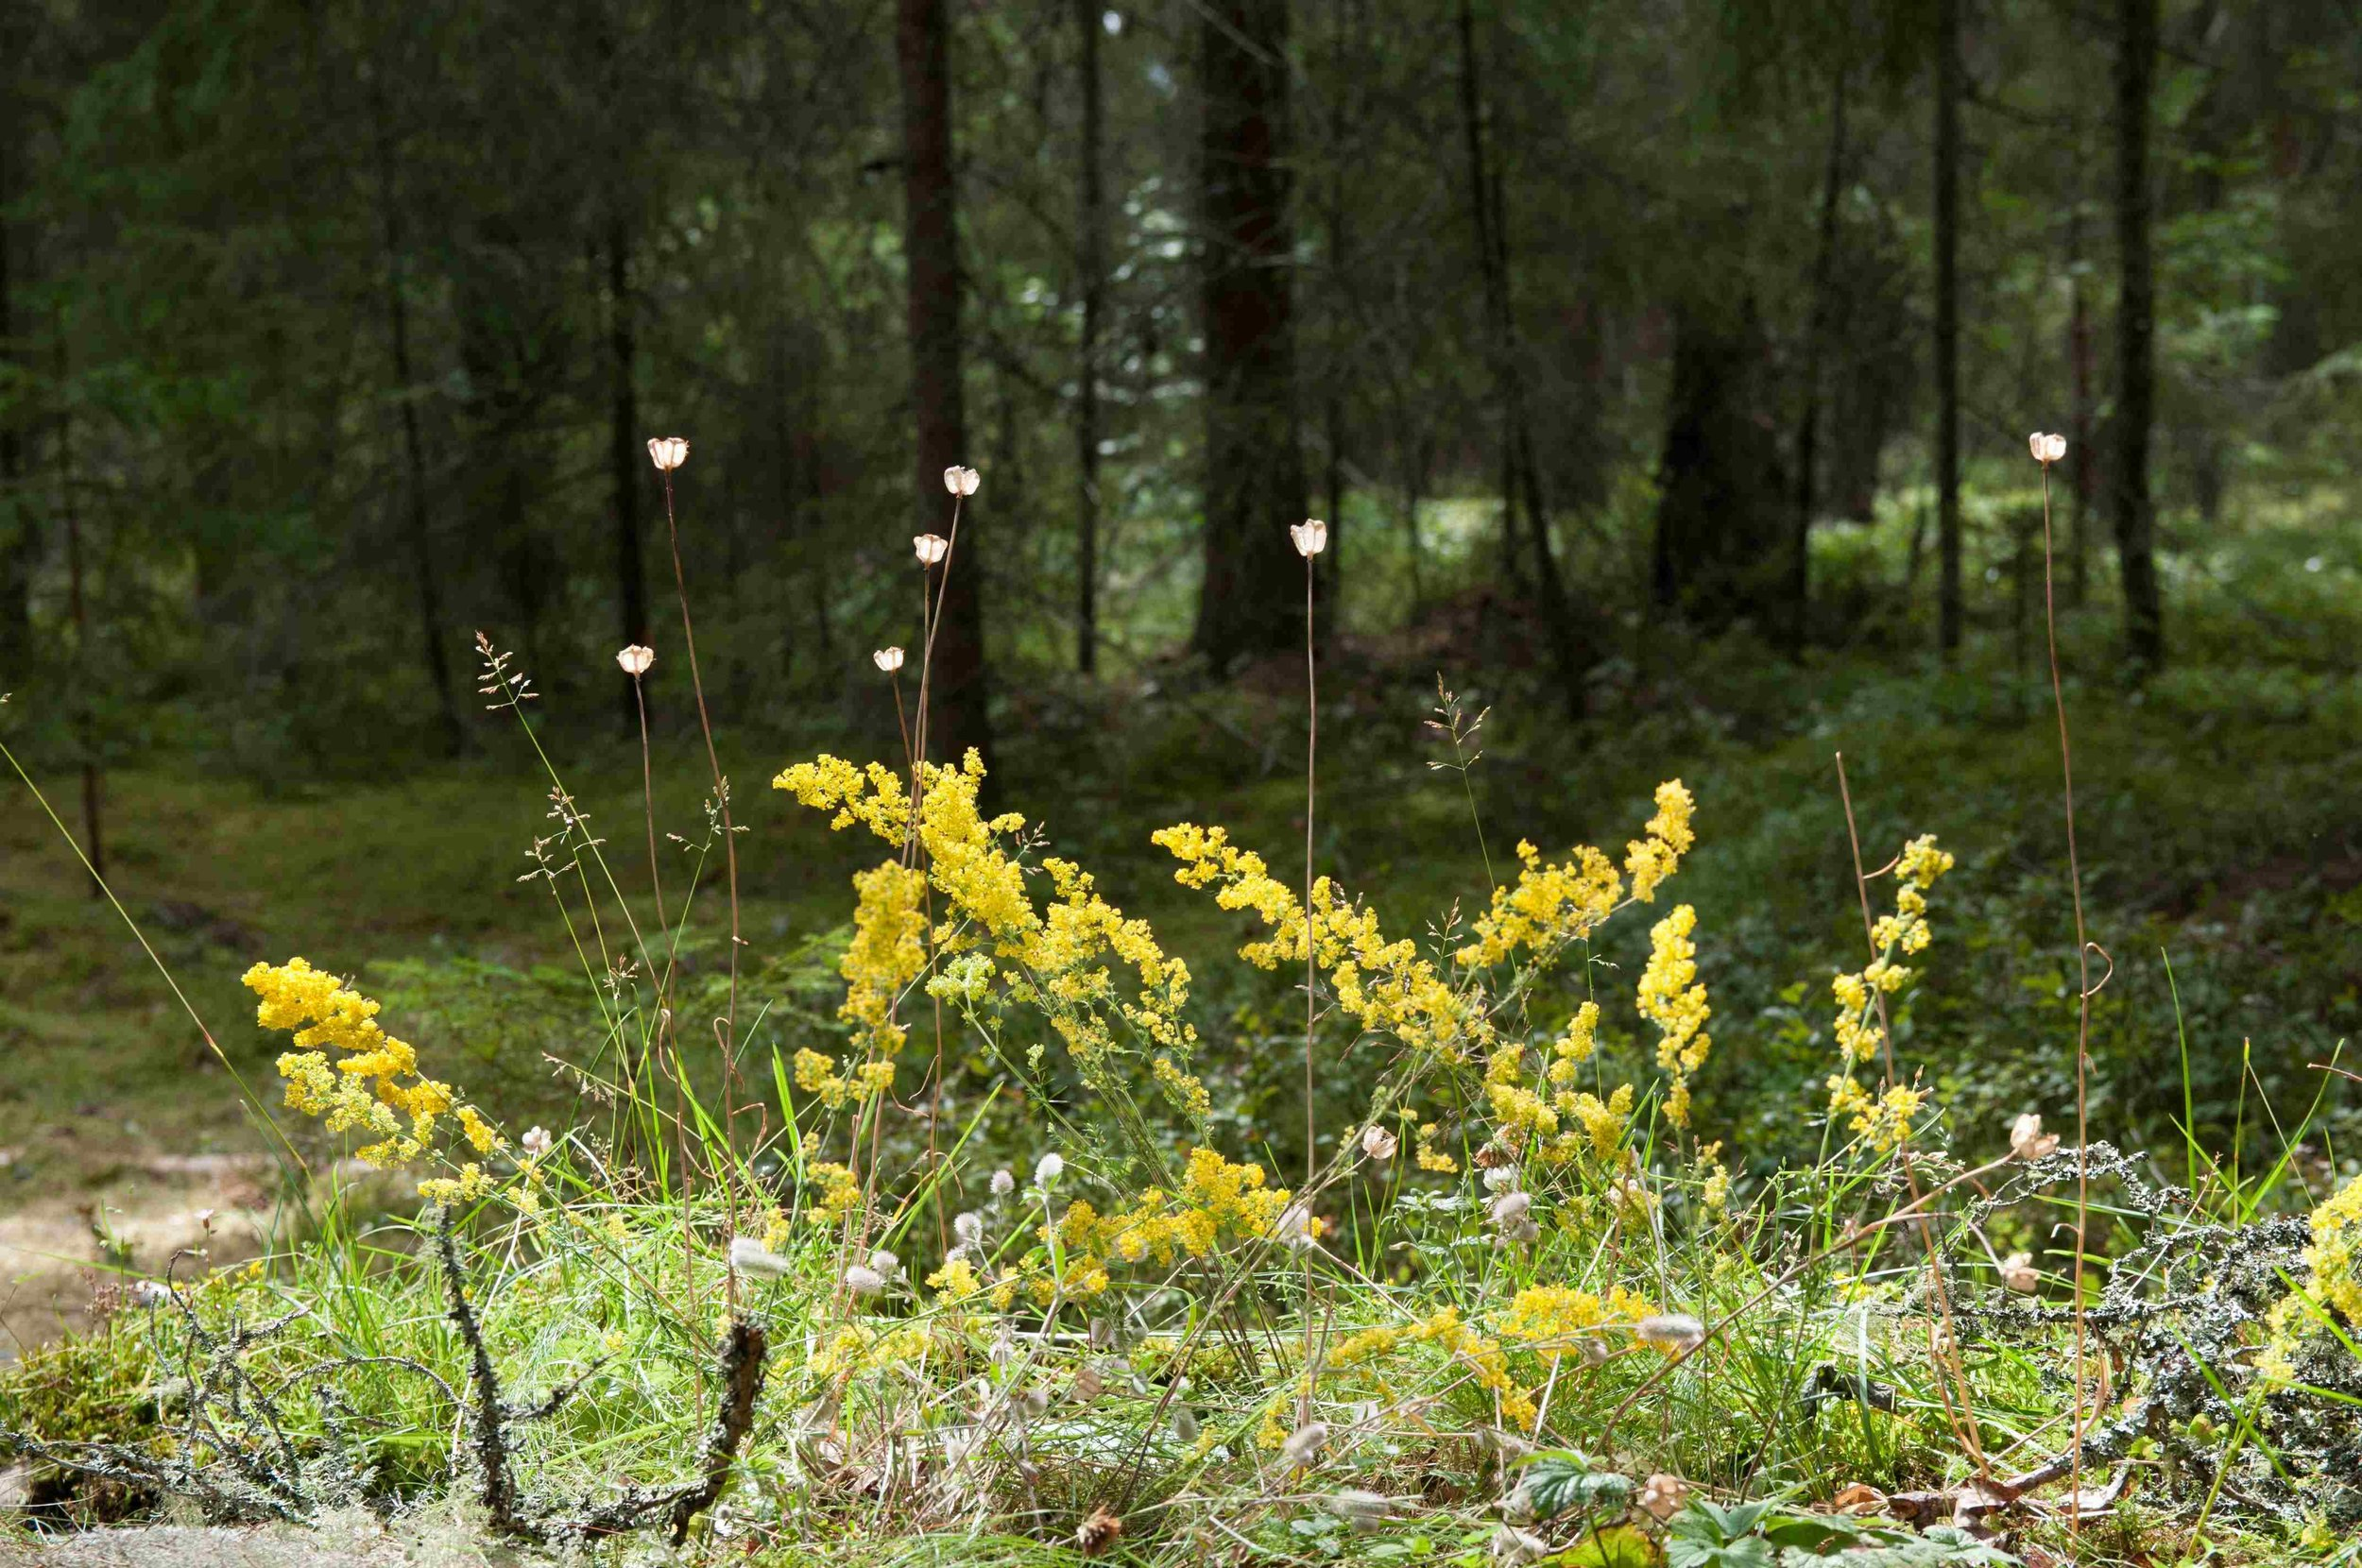 Galium - The distinctive glowing yellow of wild Galium with the pretty seeds of Fritillaria made the table look sunny.